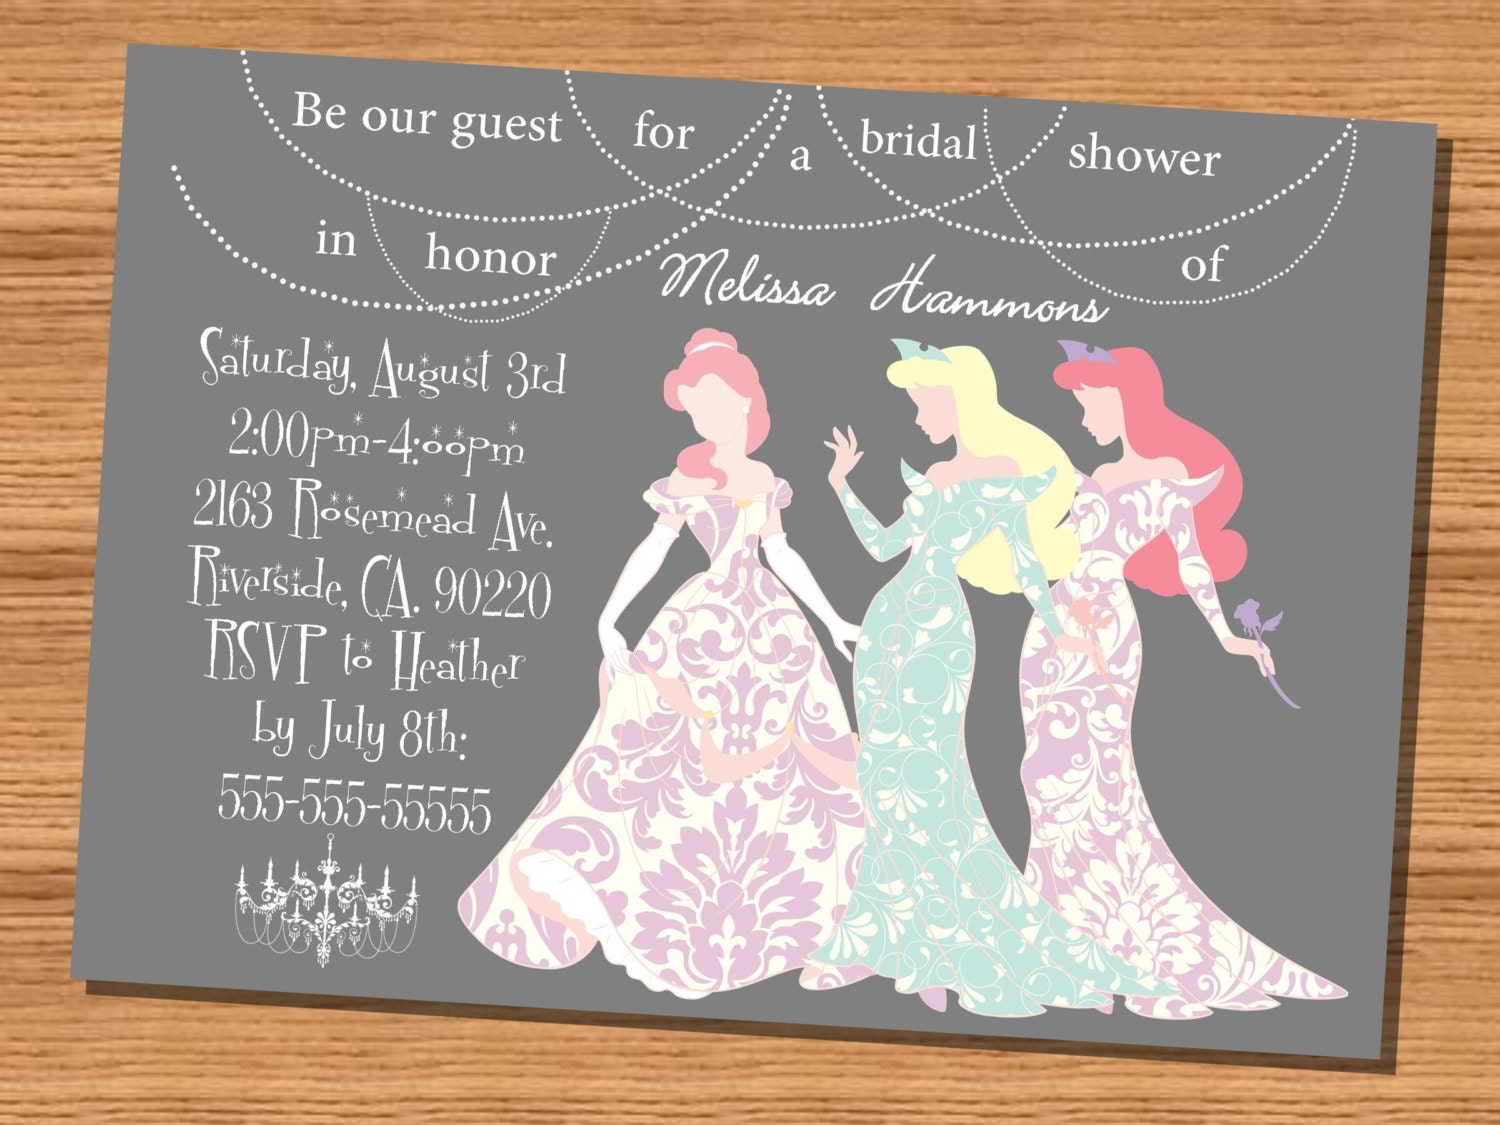 Princess Belle Birthday Party Invitations was good invitations example